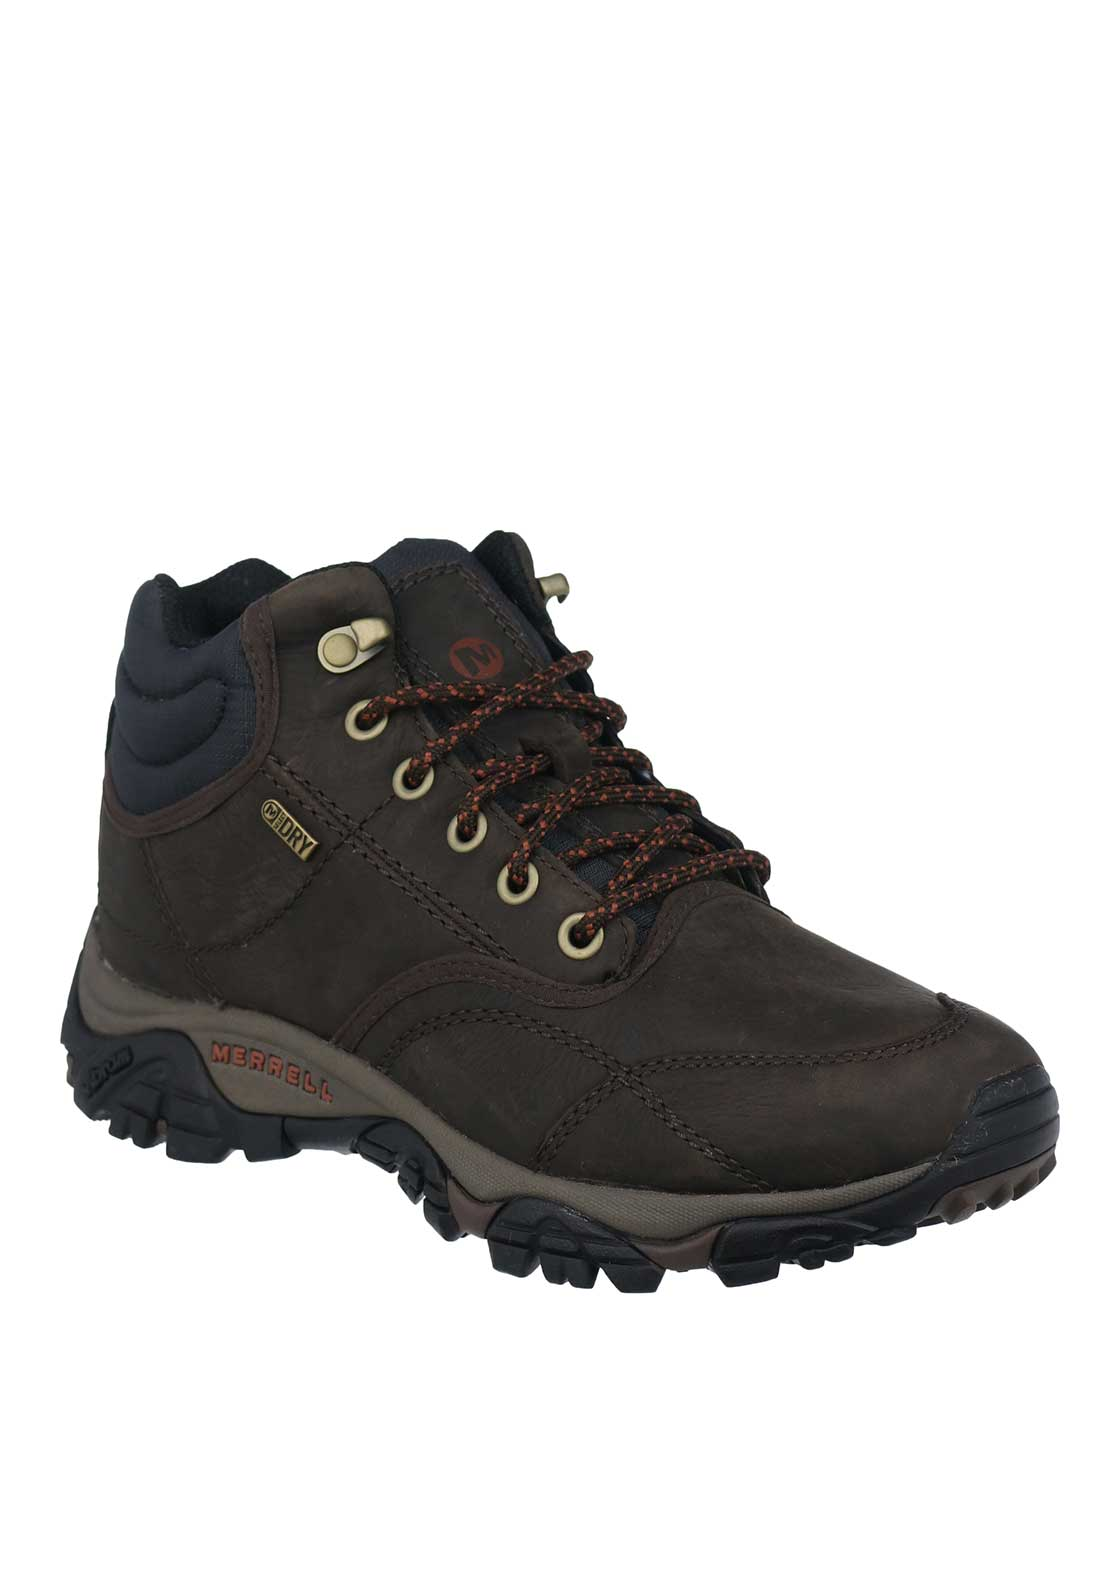 Merrell Moab Rover Mid-Height Waterproof Wide Fit Hiking Boot, Espresso